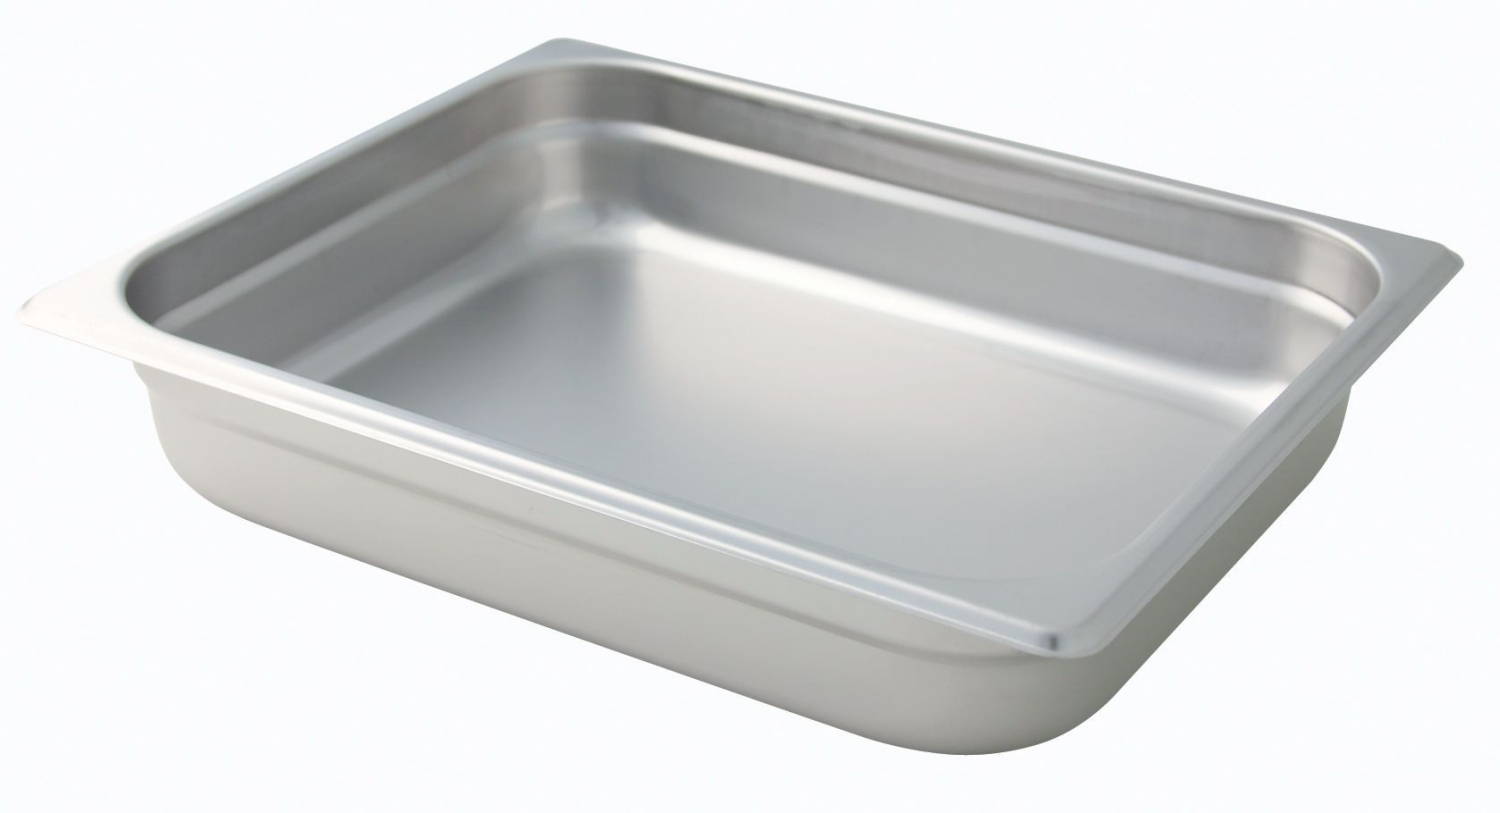 Johnson Rose 57202 1/2-Size Steam Table Pan 4 Qt. 12